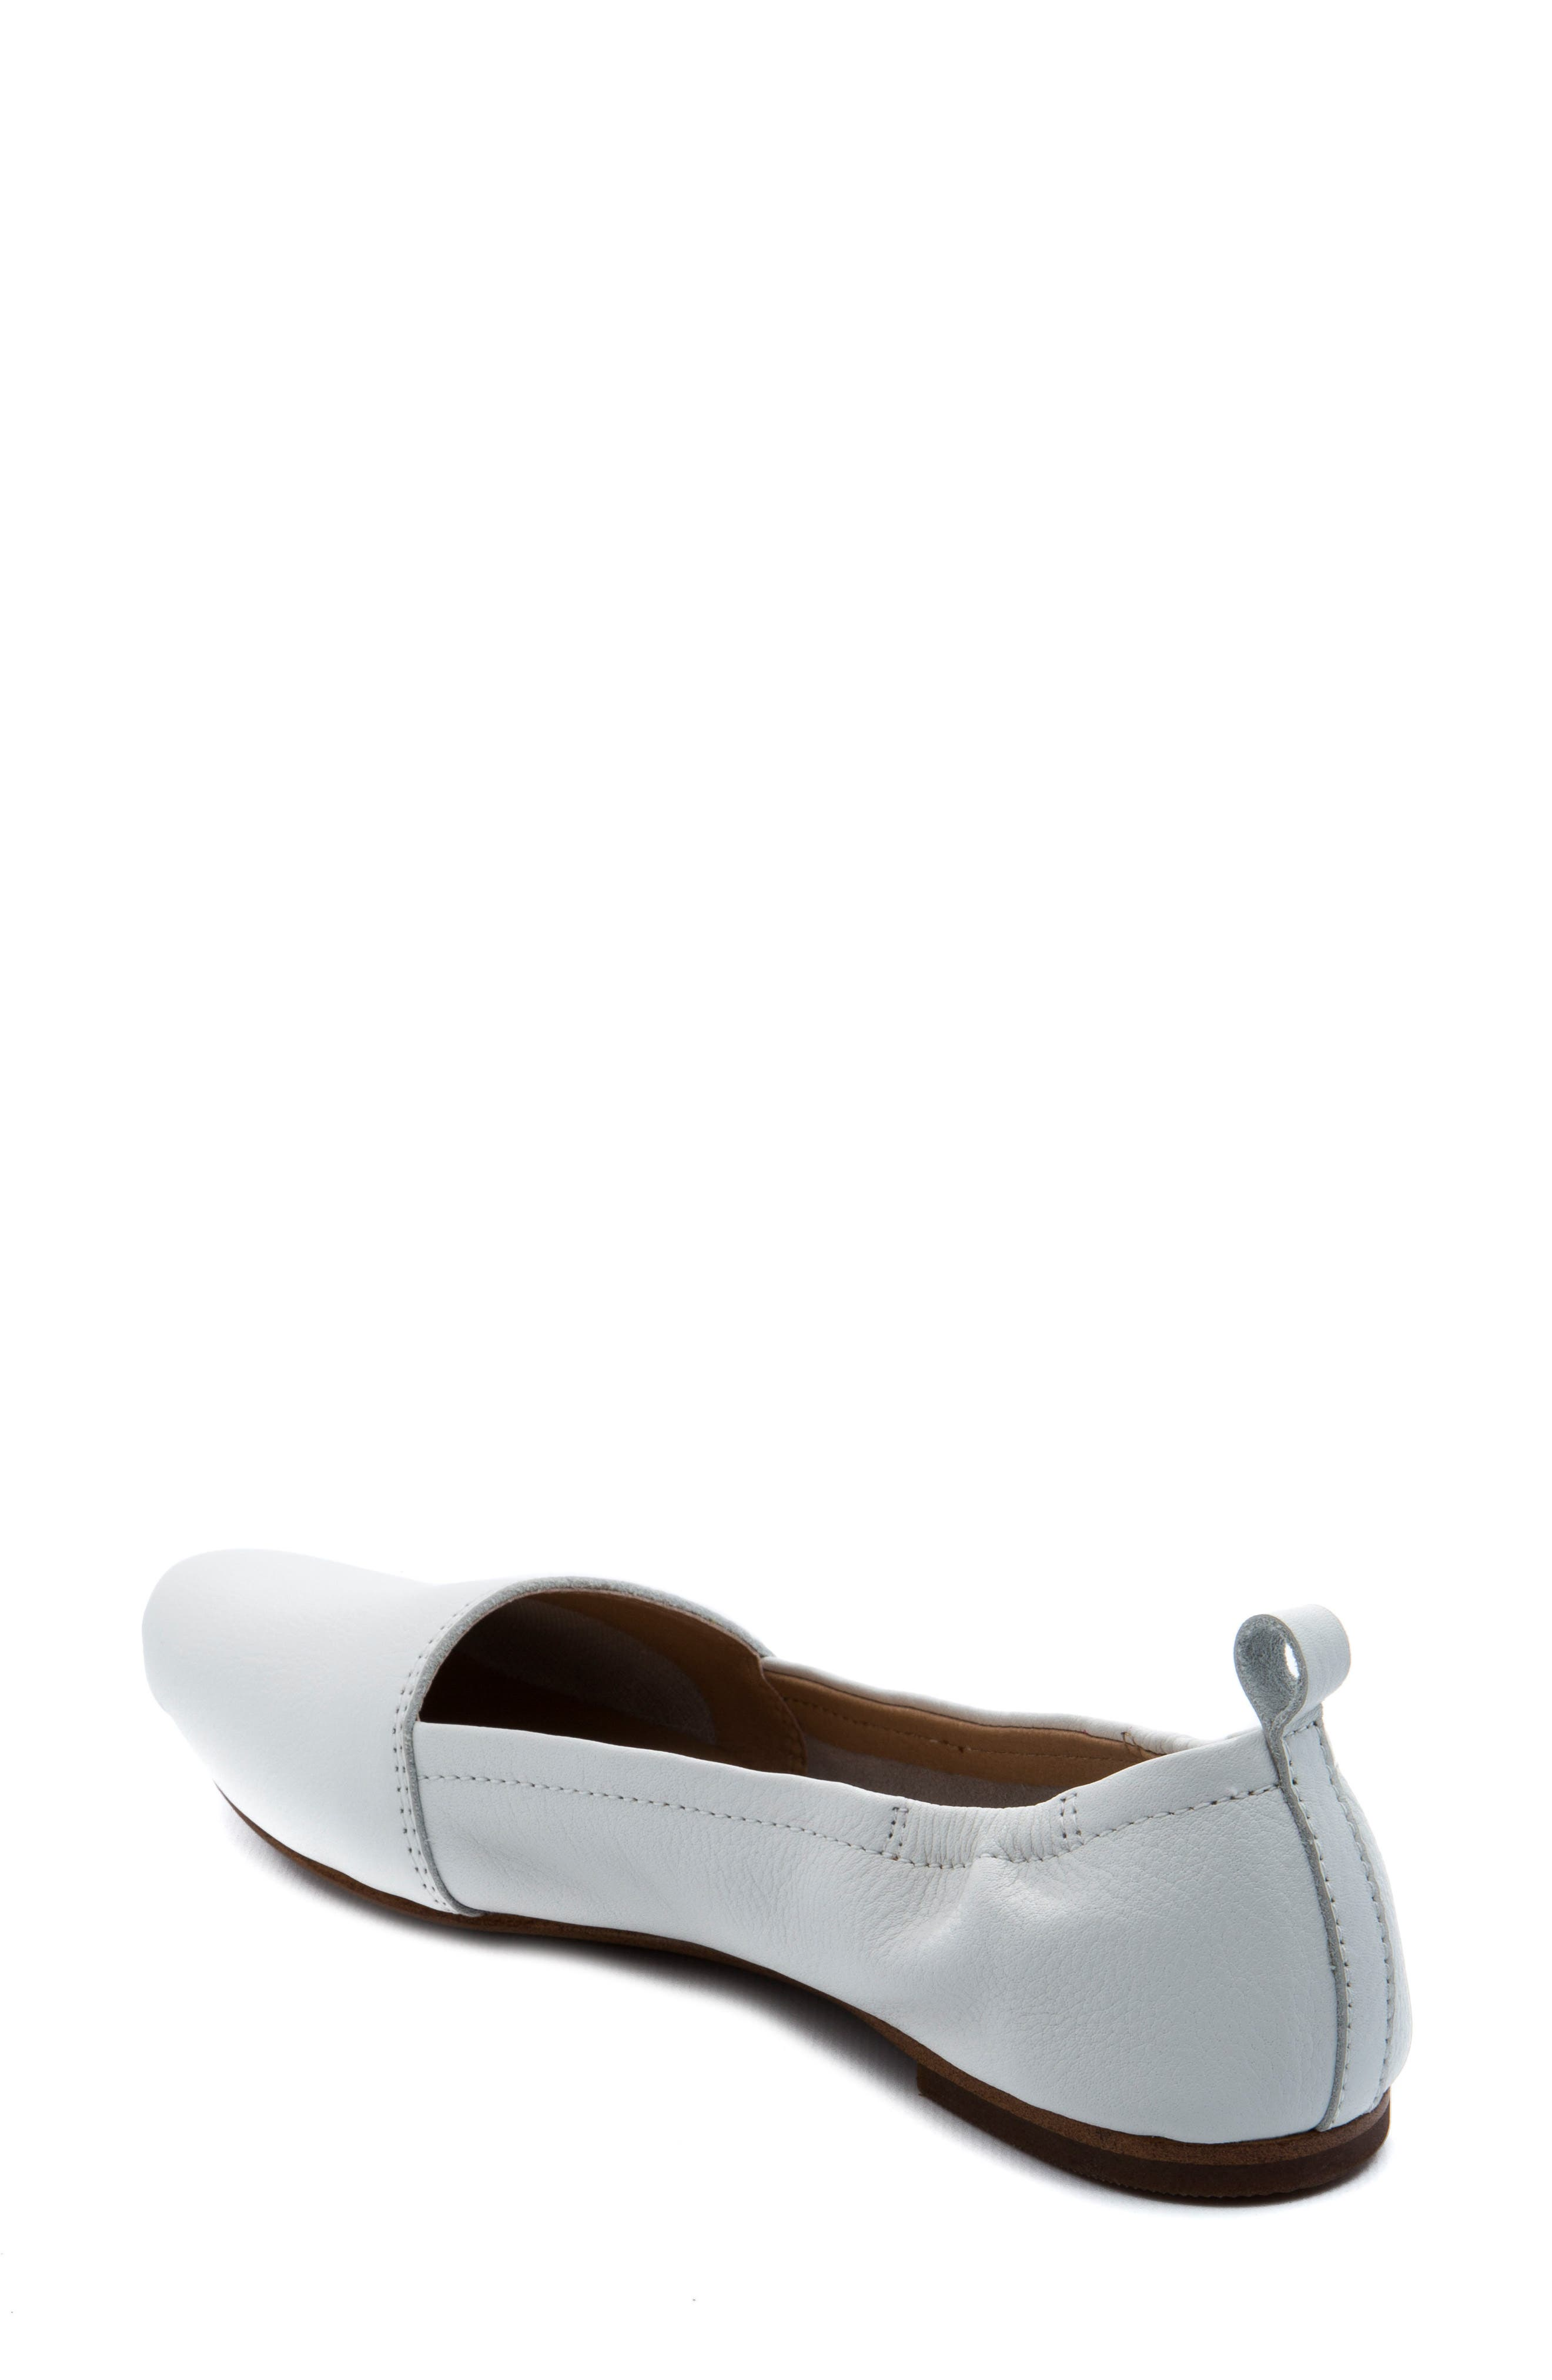 'Bettie' Leather Flat,                             Alternate thumbnail 10, color,